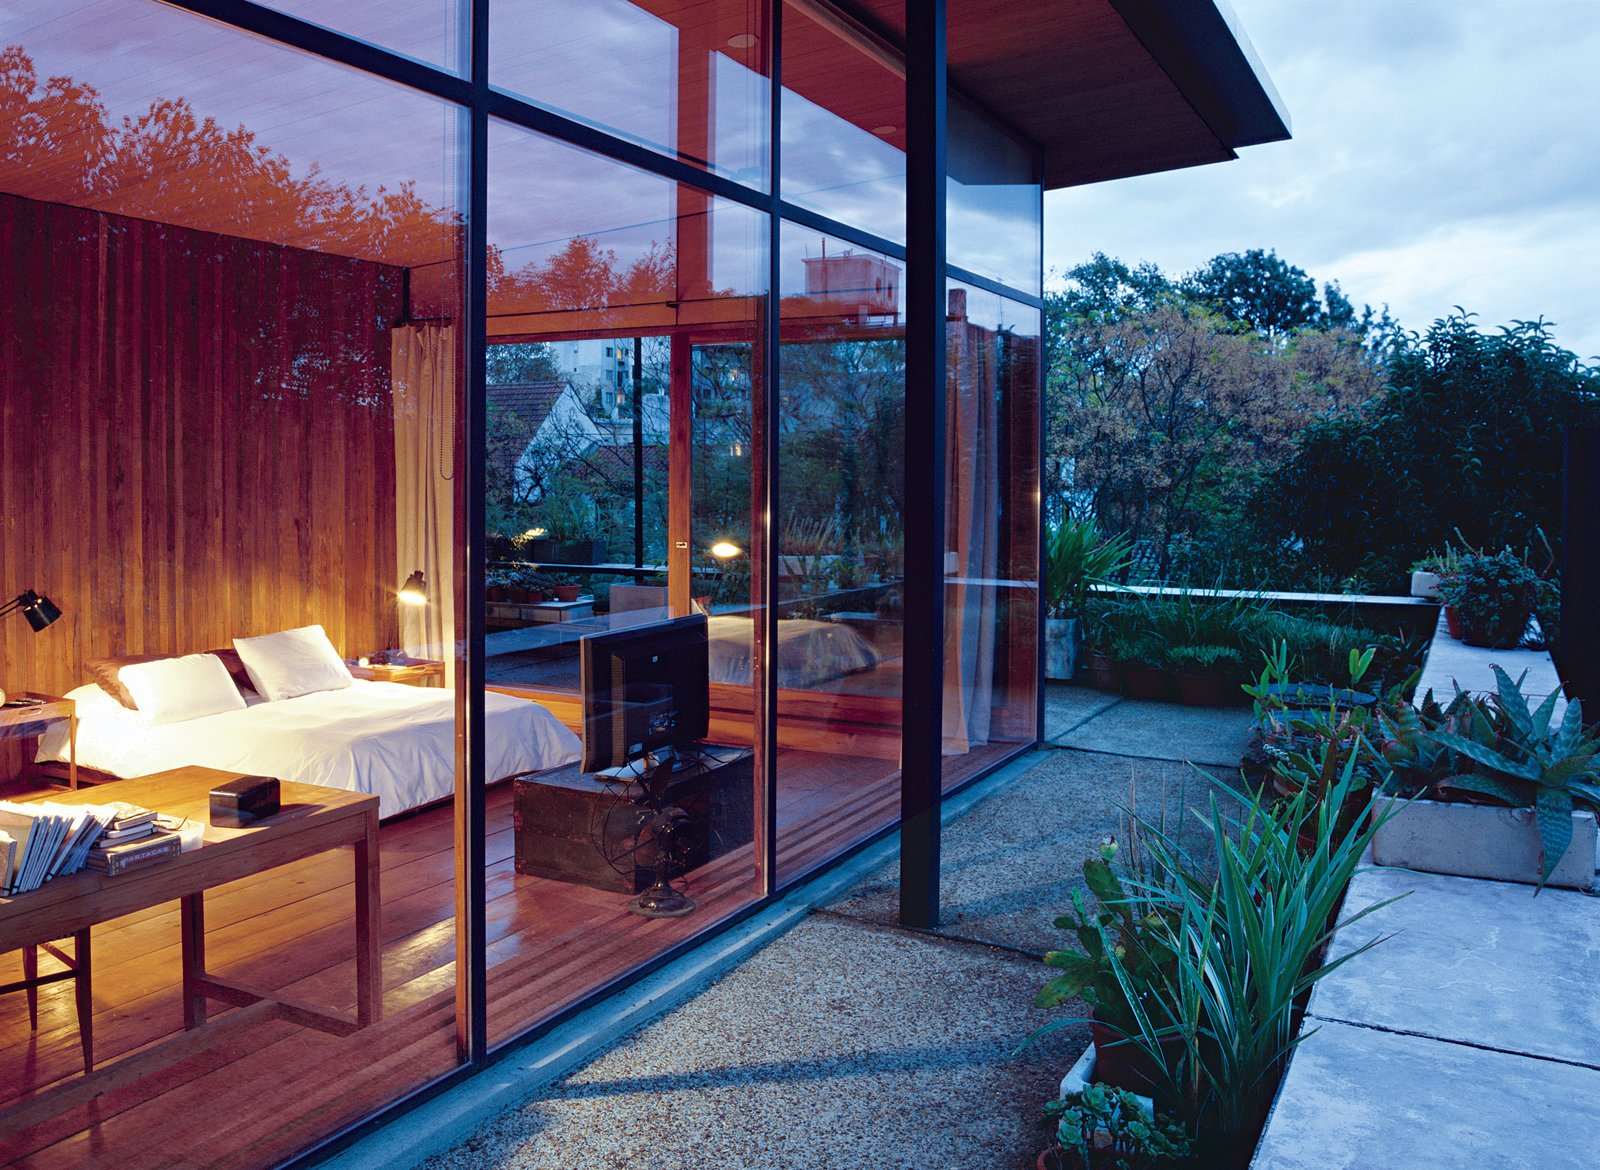 Bedroom and Bed Dappled sunlight and reclaimed-wood floors and walls give the master bedroom a warm, peaceful feel. Giant sliding doors open onto a wraparound deck peppered with potted plants   from the couple's vacations in Brazil, Uruguay, the Netherlands, and Italy.  Photo 7 of 12 in 10 Examples of Sustainability at Work in Outdoor Spaces from Net Assets